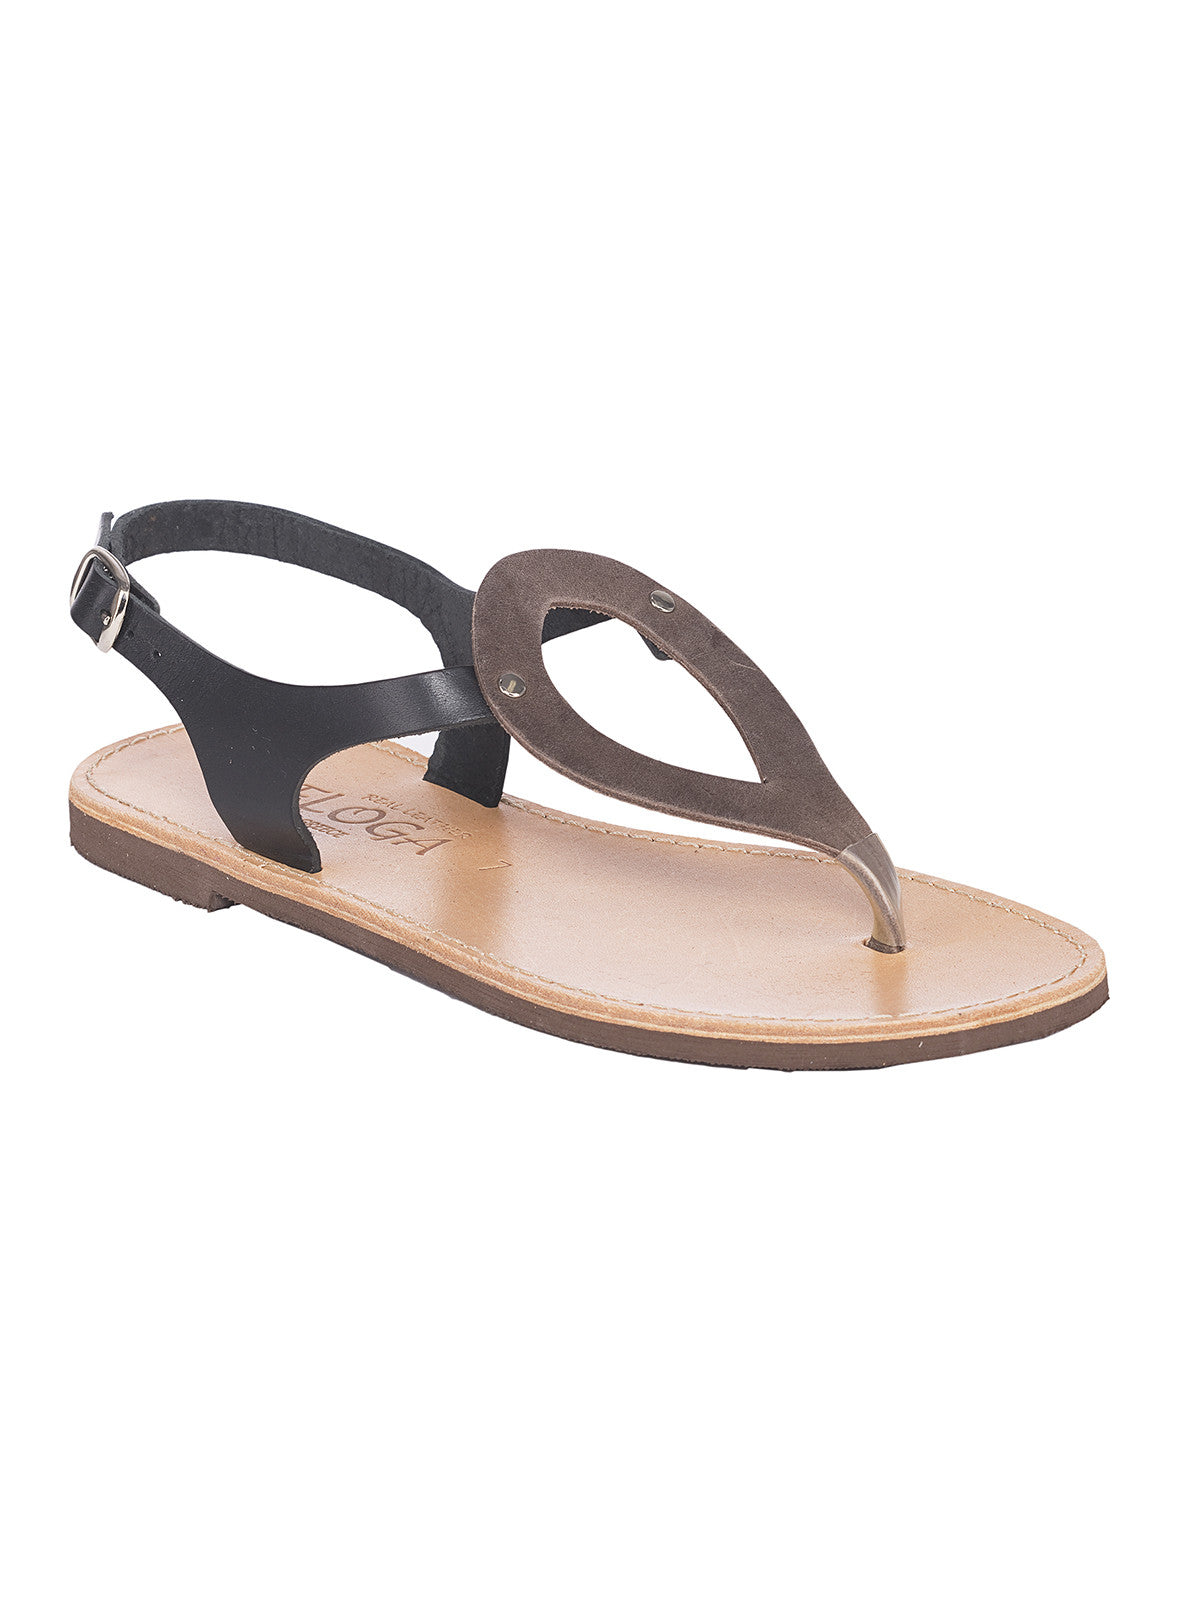 Ioanna Greek Leather Sandals